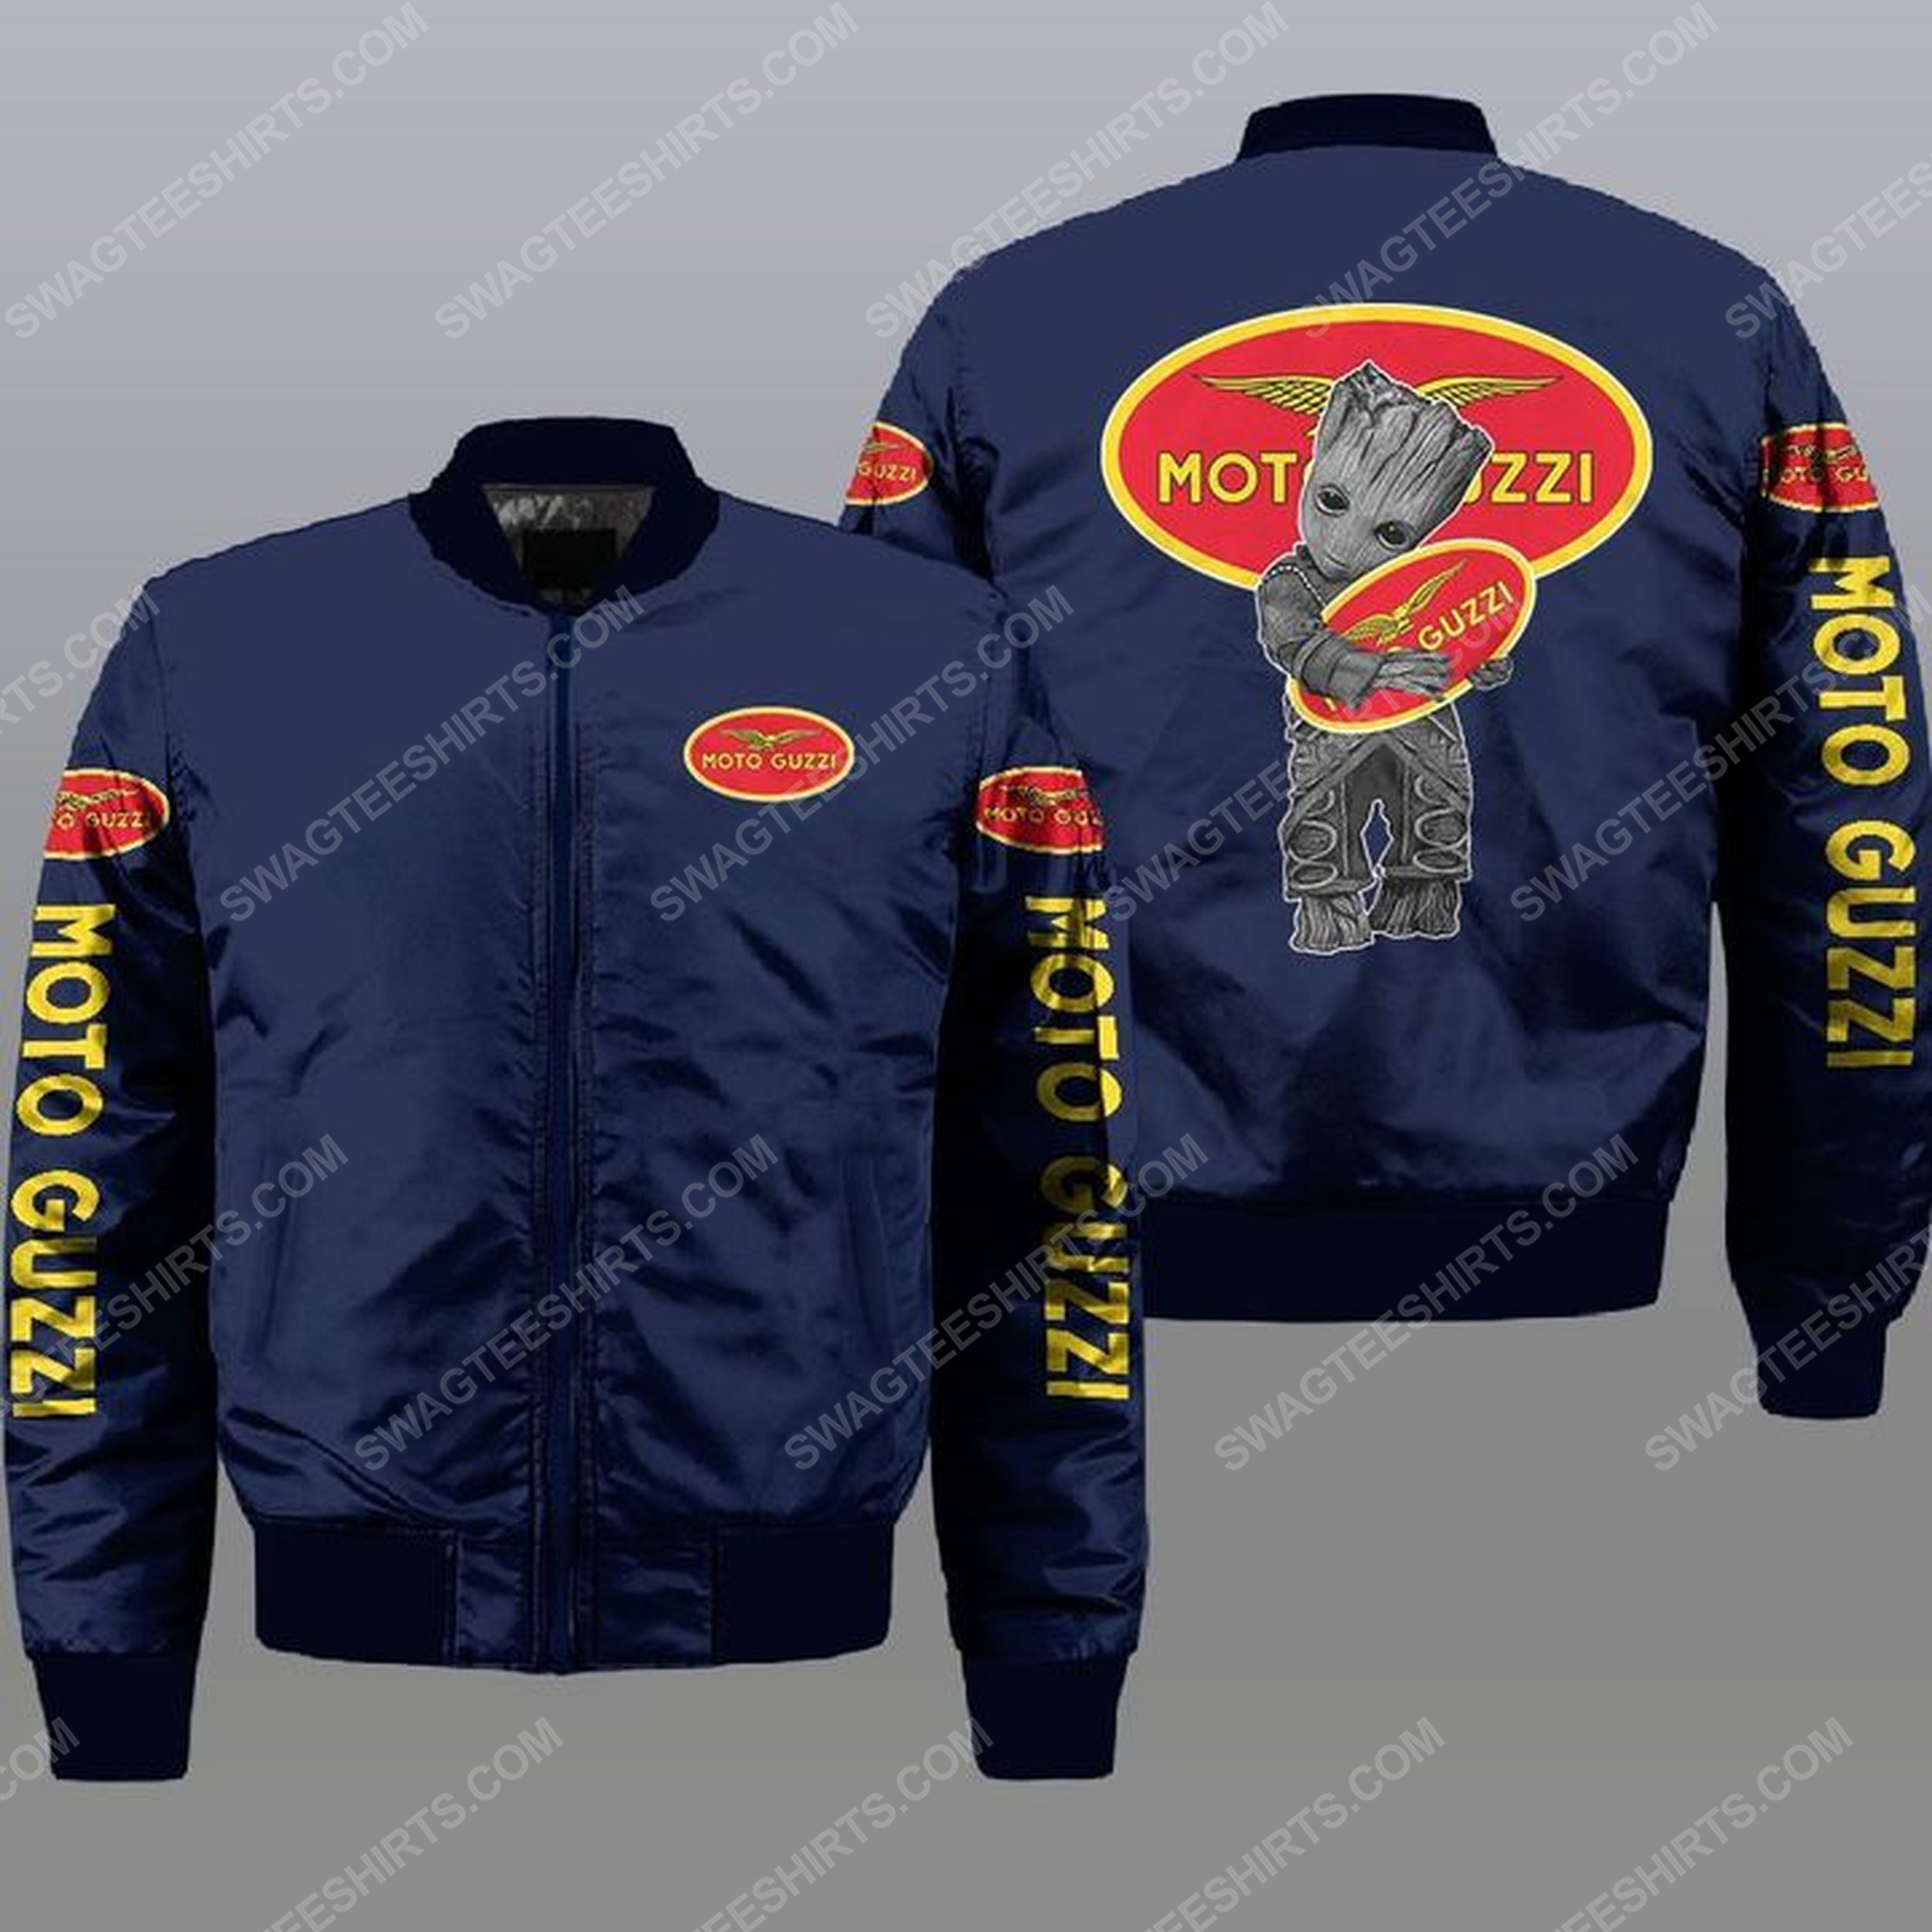 Baby groot and moto guzzi all over print bomber jacket -navy 1